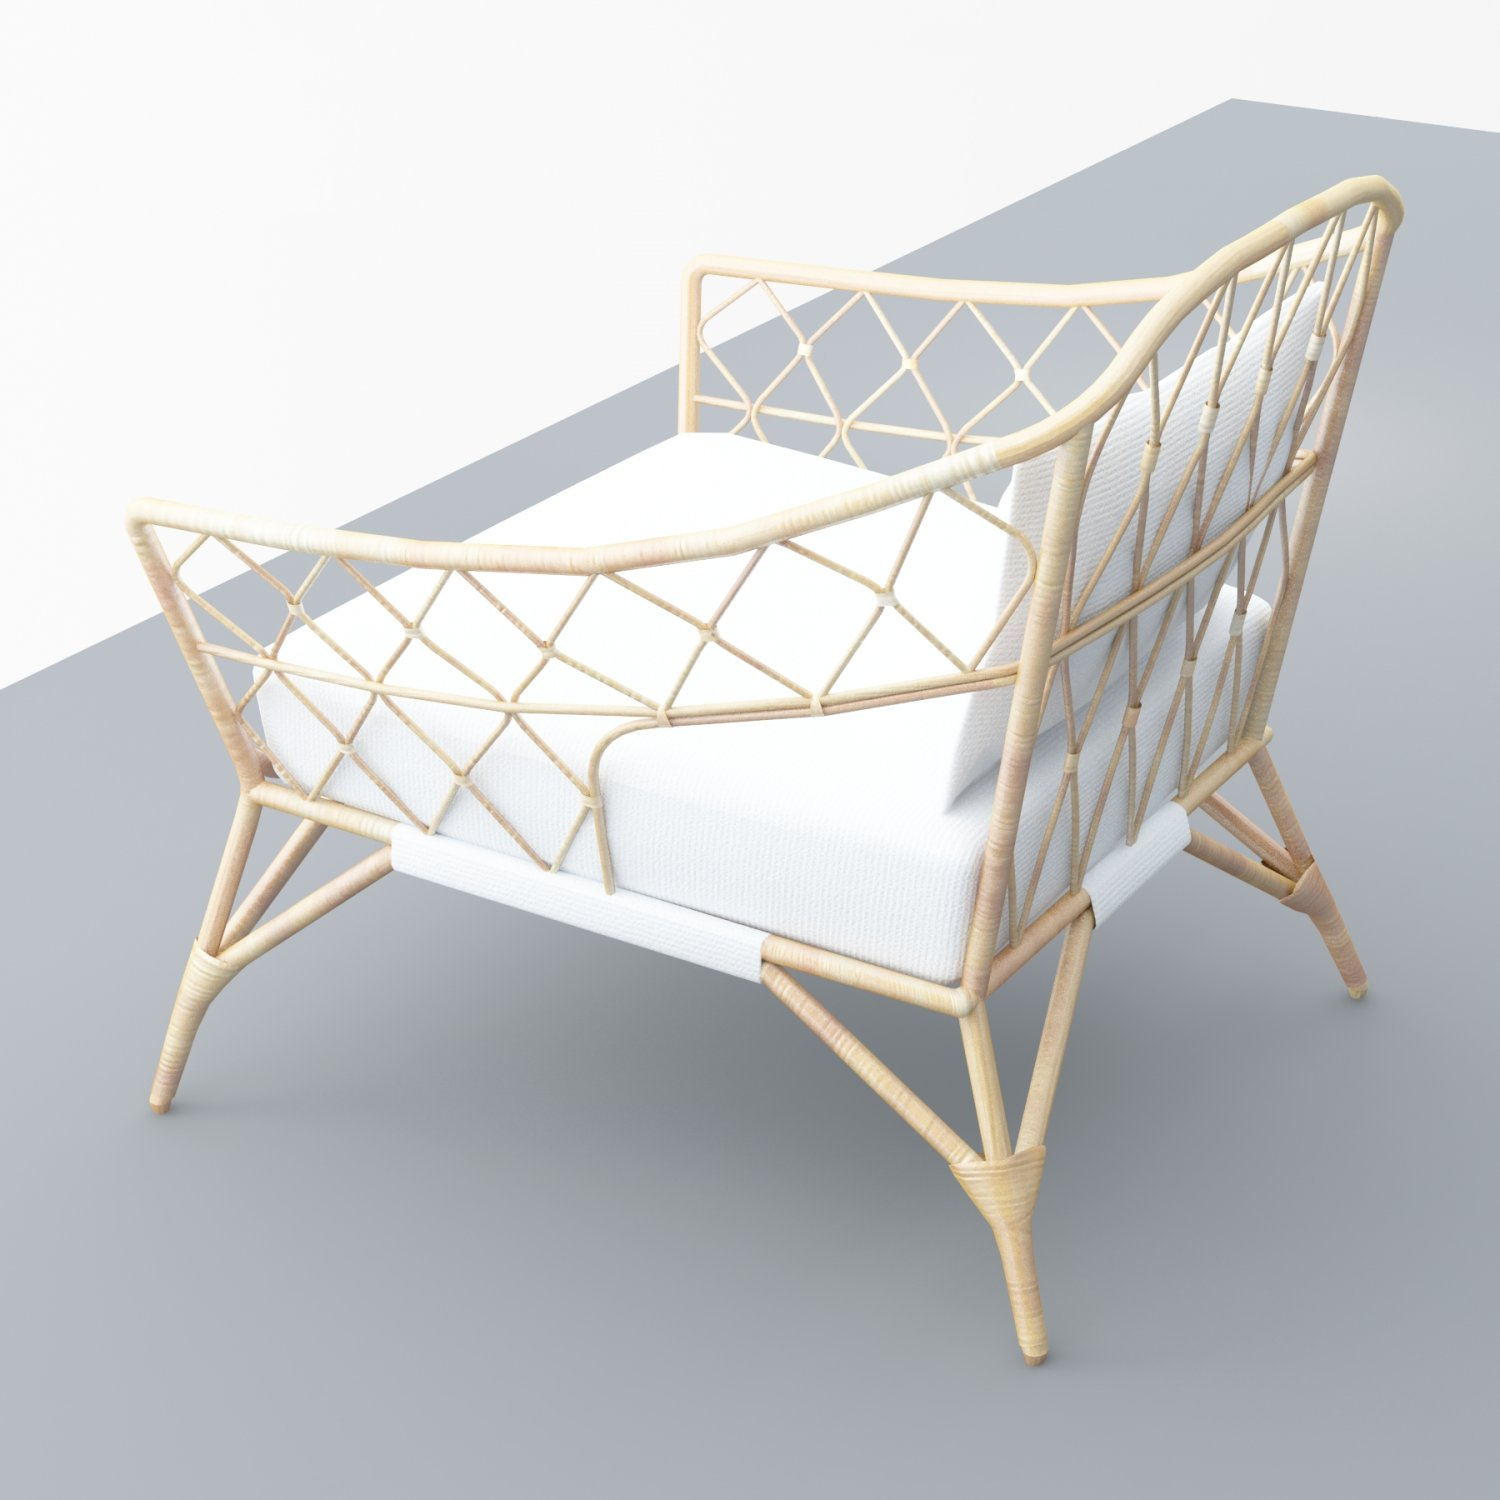 Stockholm Ikea Rattan Chair Low Poly 3d Model In Chair 3dexport & rattan blog: ikea stockholm rattan chair